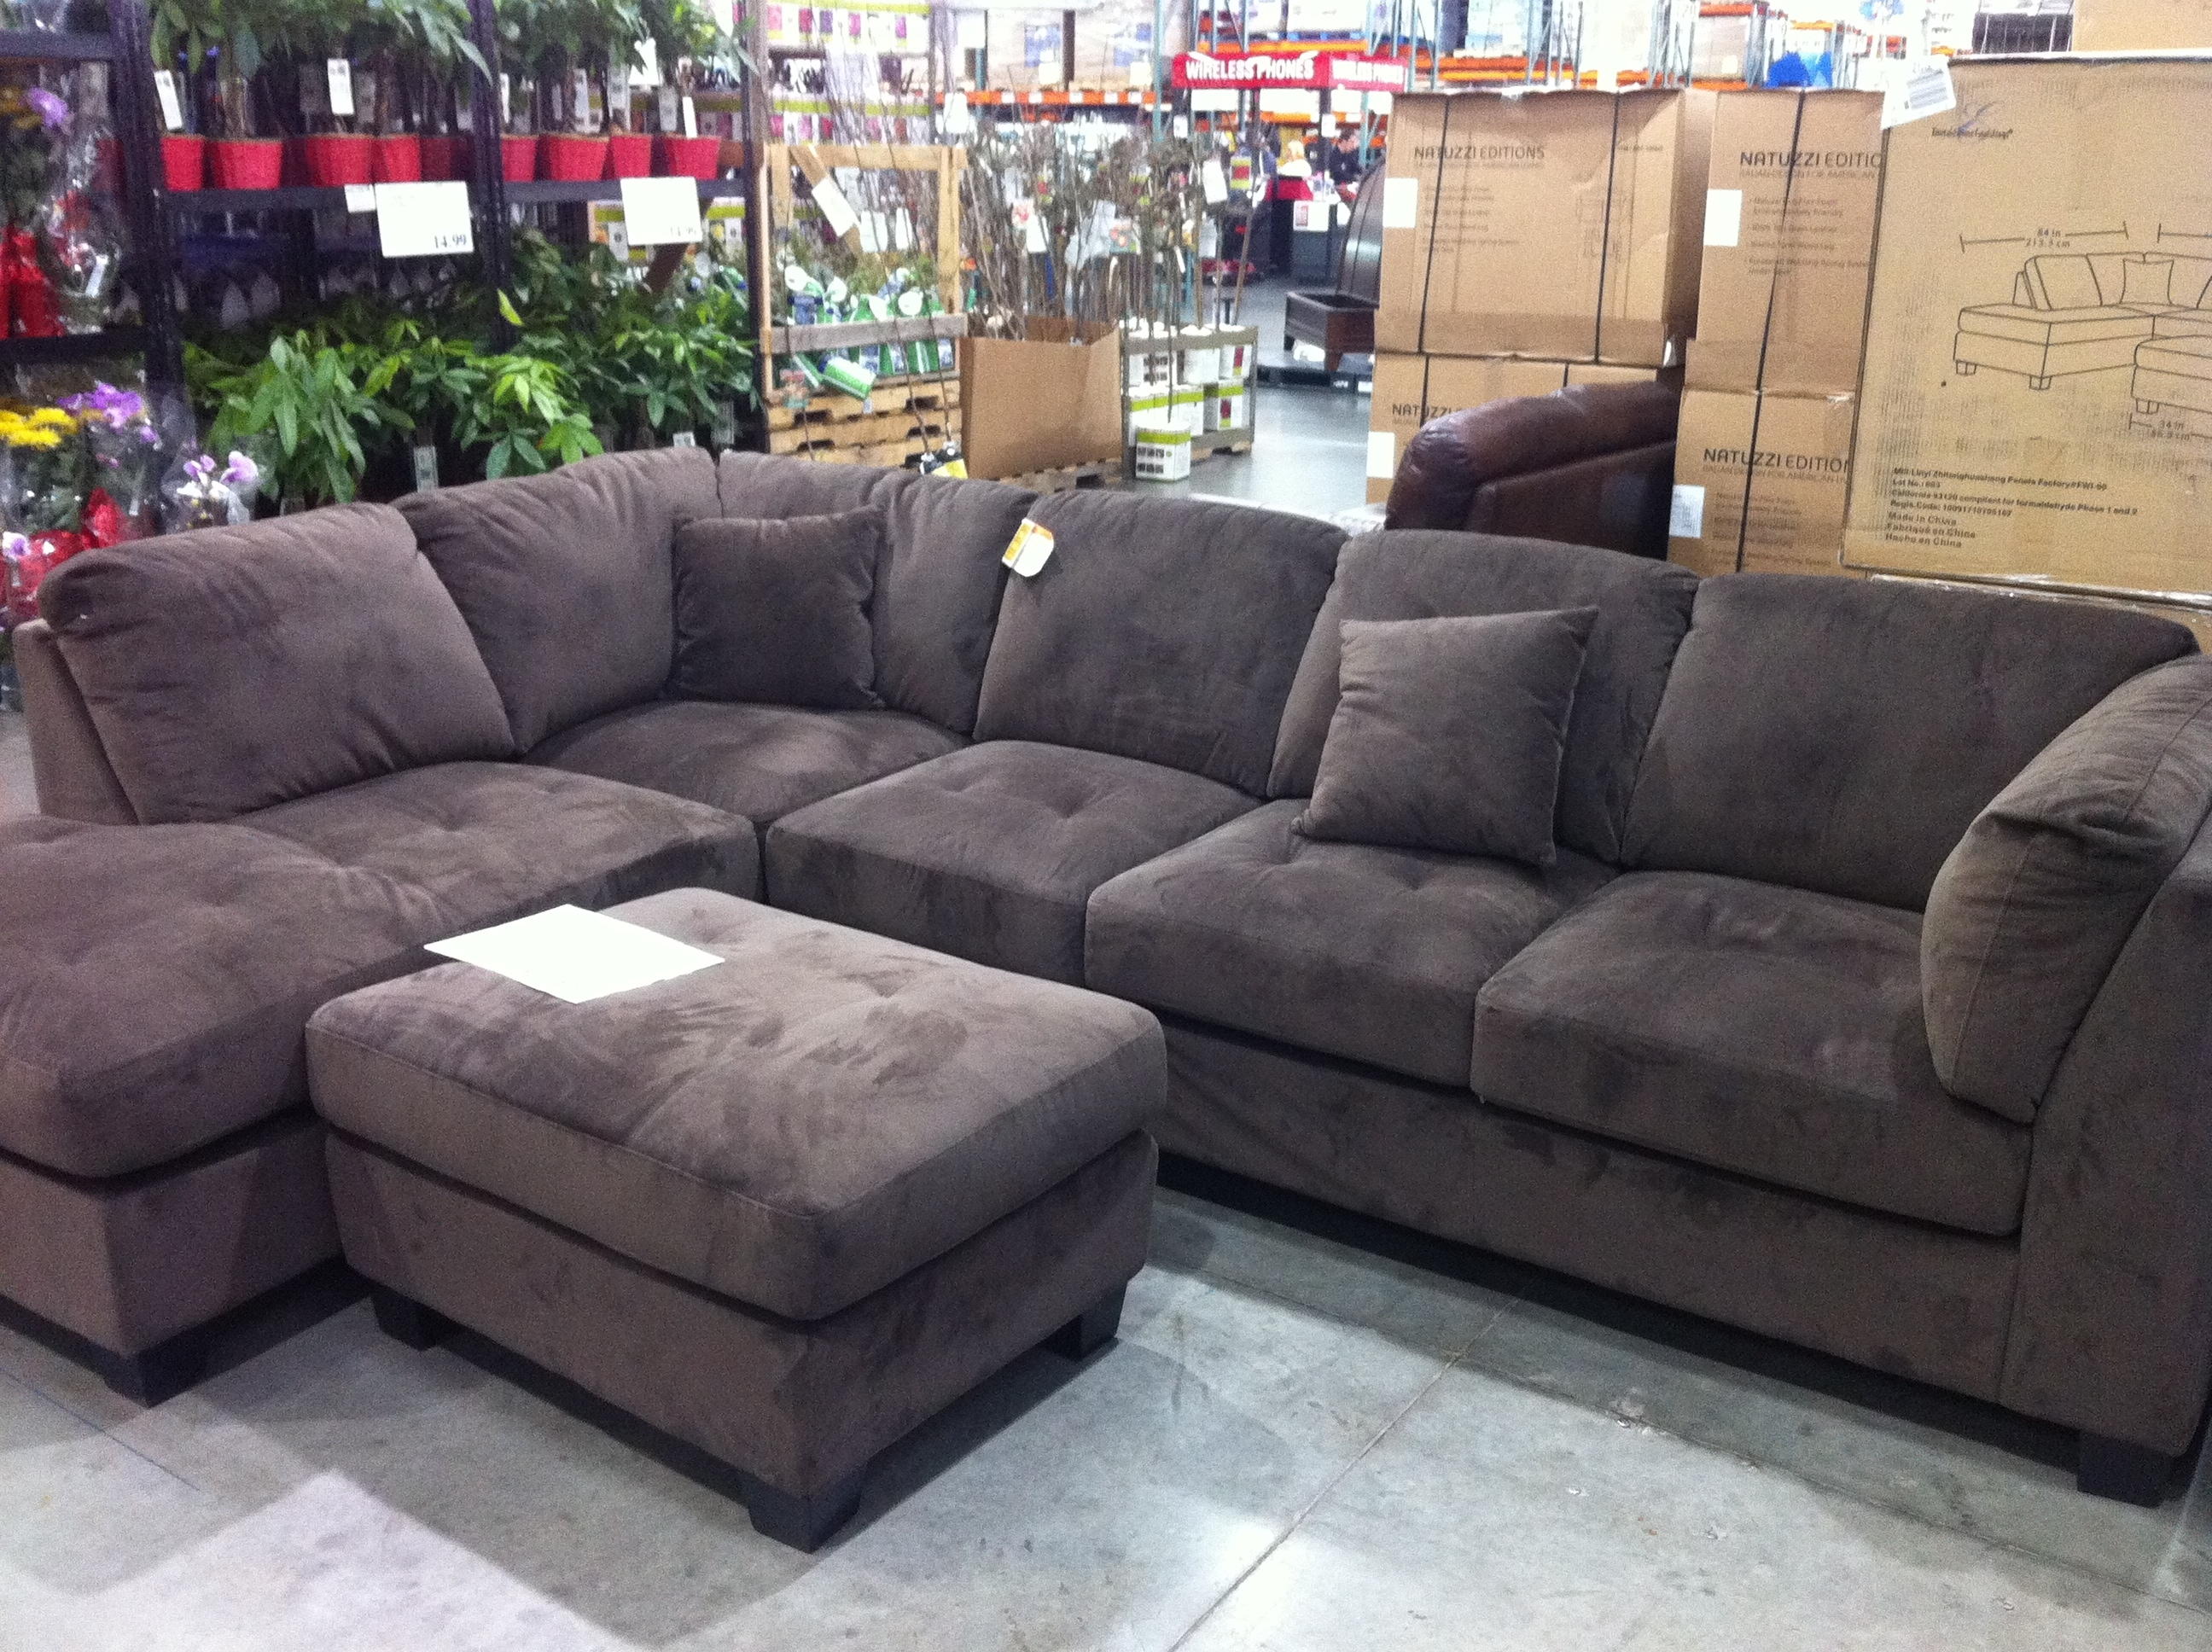 Lovely Costco Furniture Sofa With Furniture Costco Sectional Sofa With Regard To Sectional Sofas At Costco (View 9 of 15)